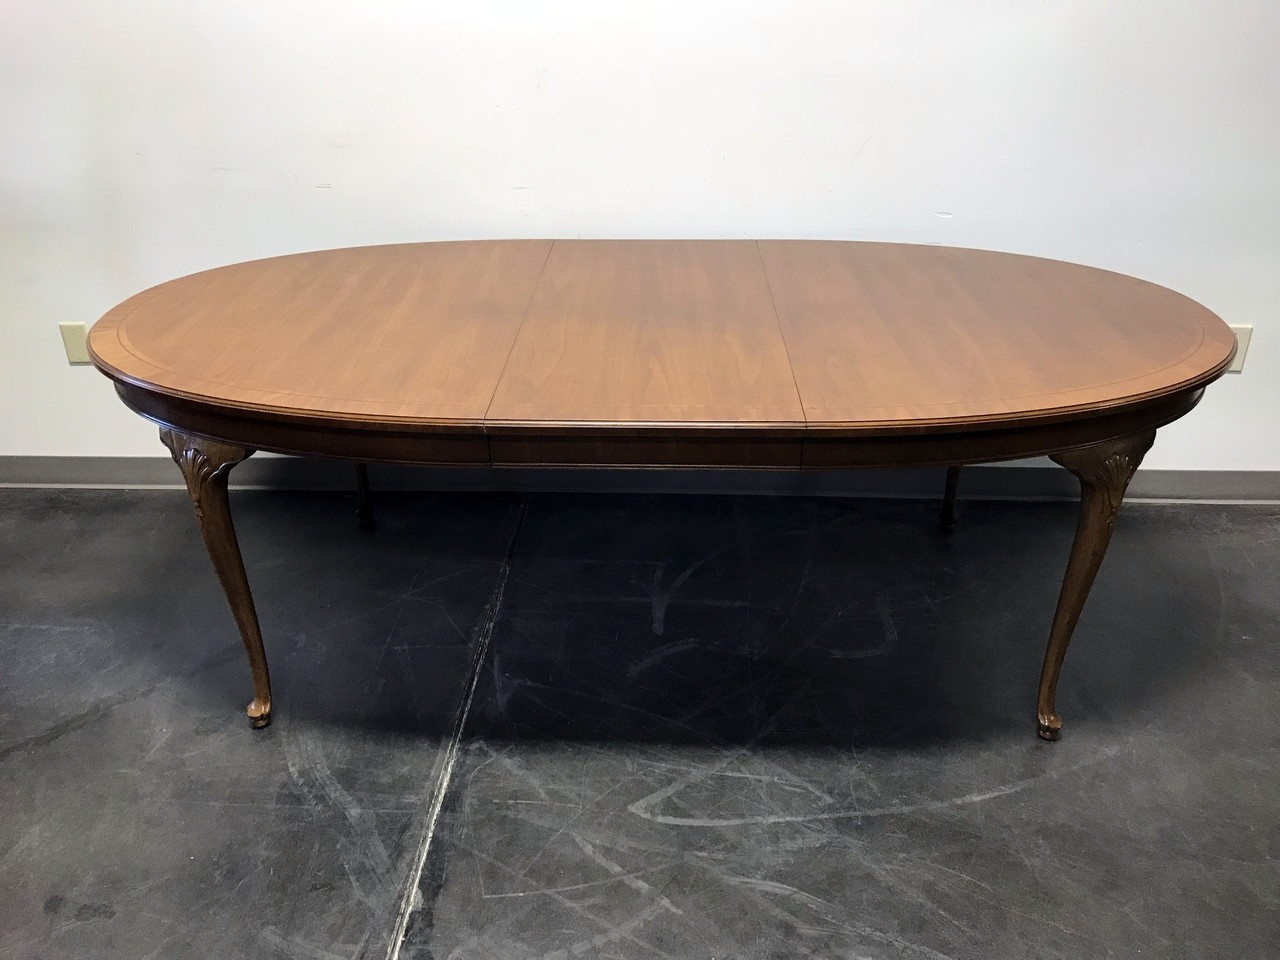 SOLD OUT HENREDON 18th Century Collection Banded Oval Walnut Queen Anne Dining Table